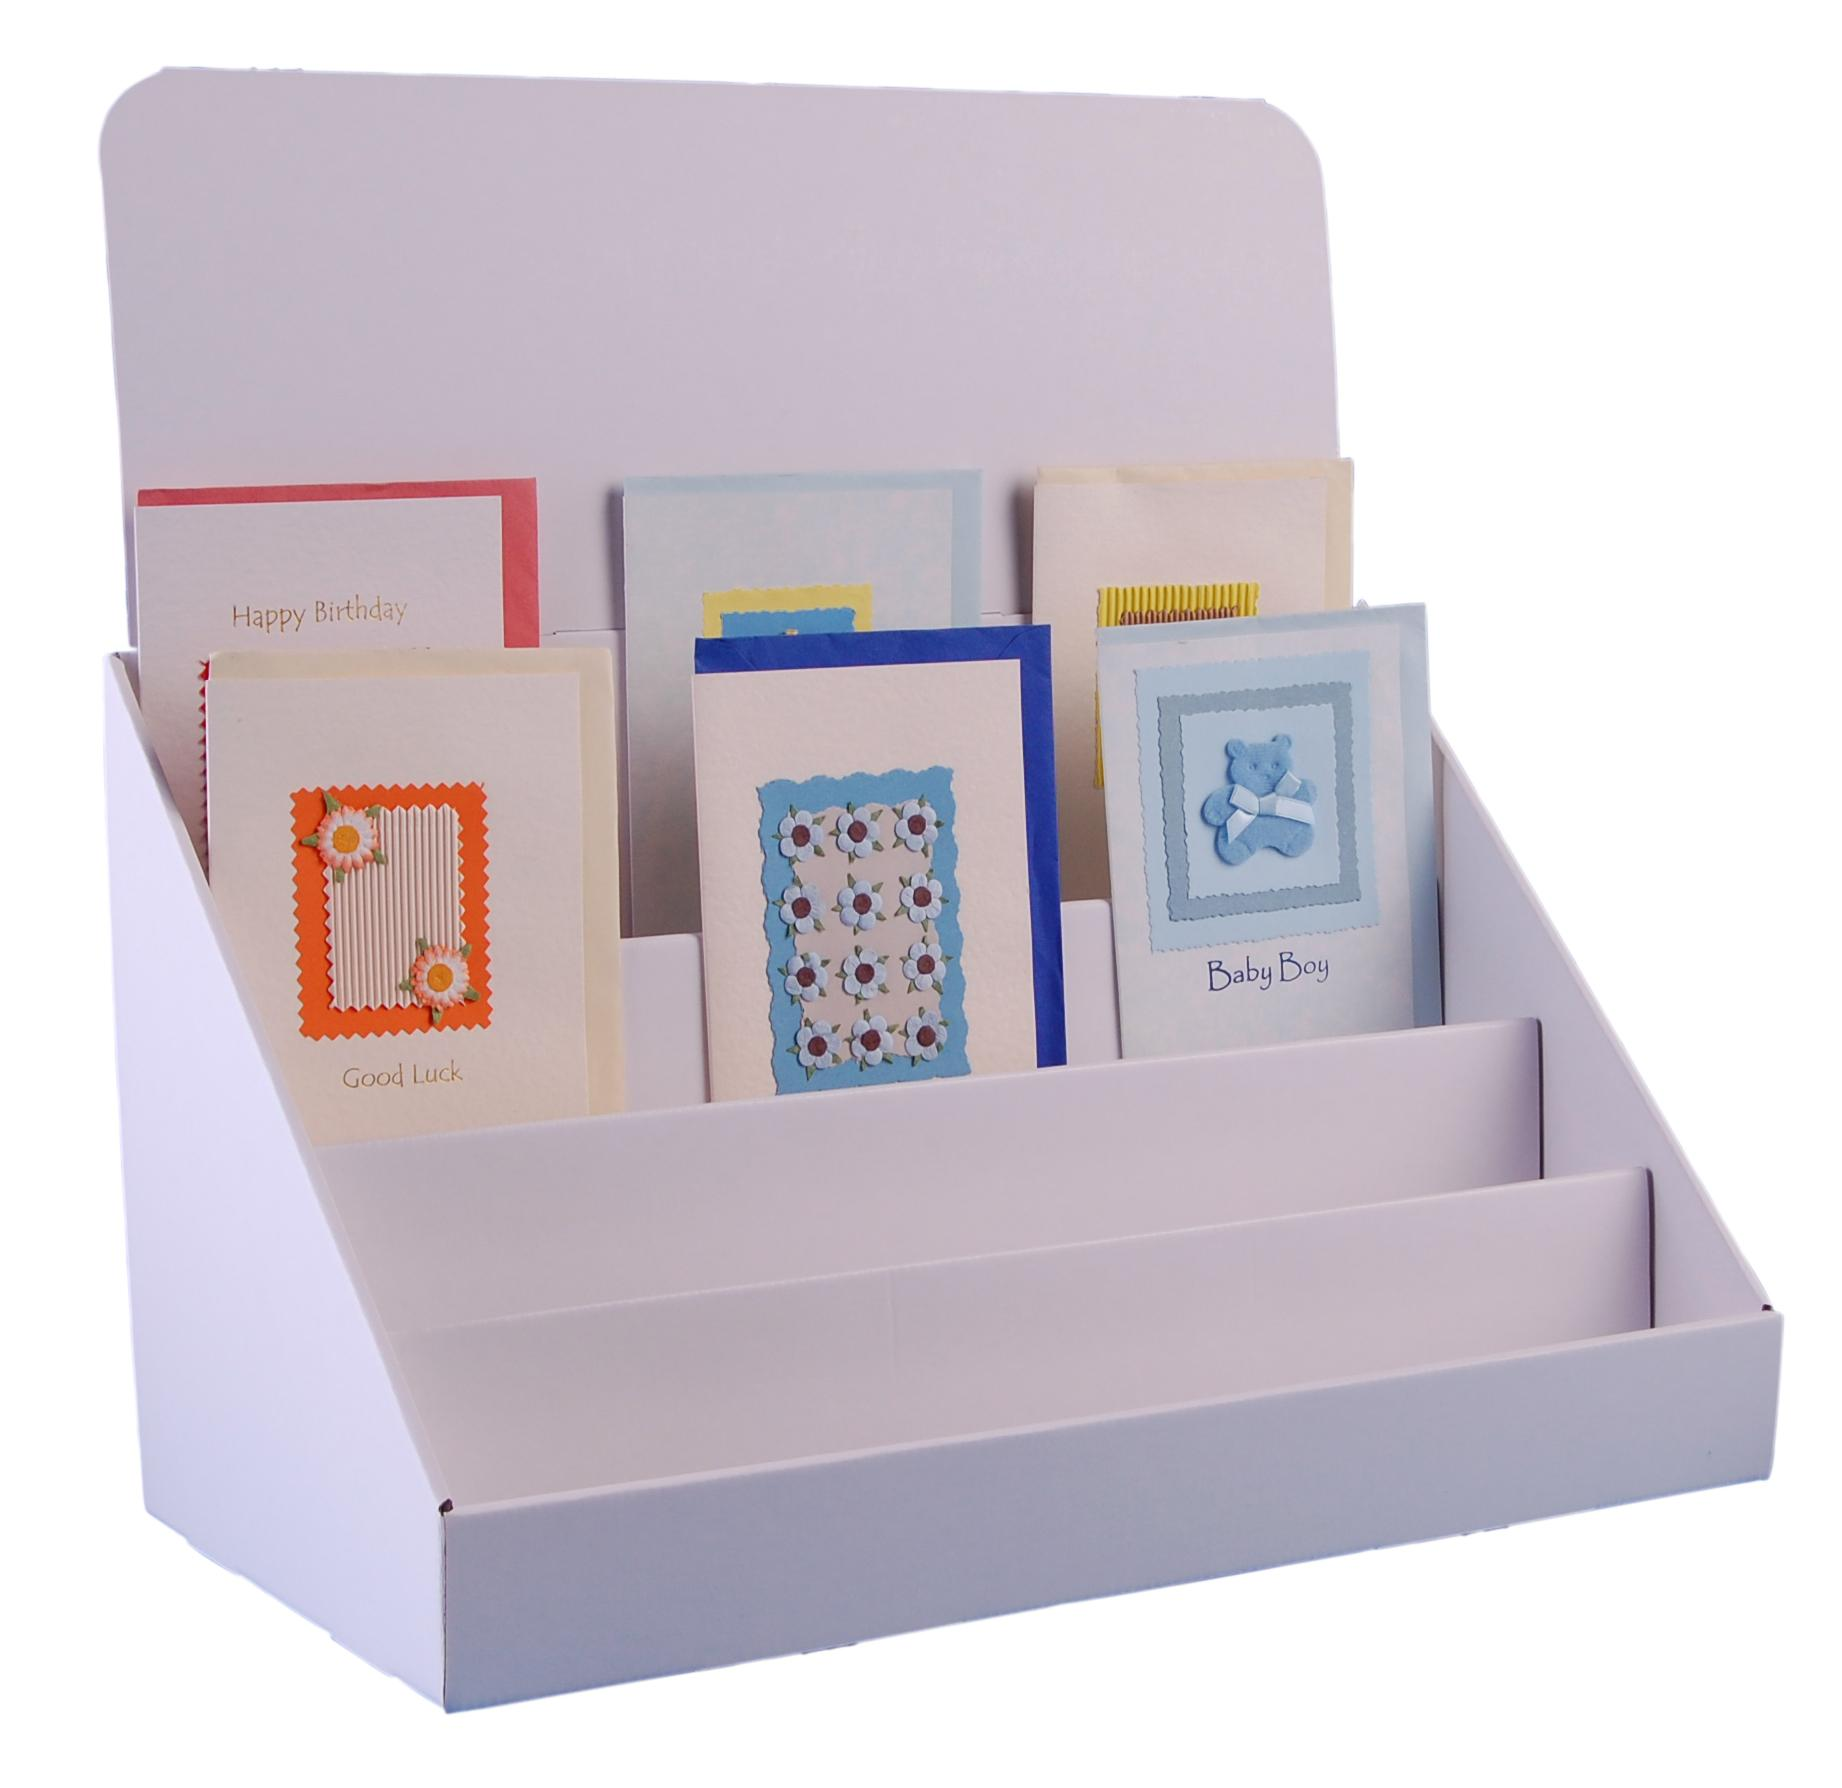 Stand Store 18 Inch 4 Tier Cardboard Greeting Card Display